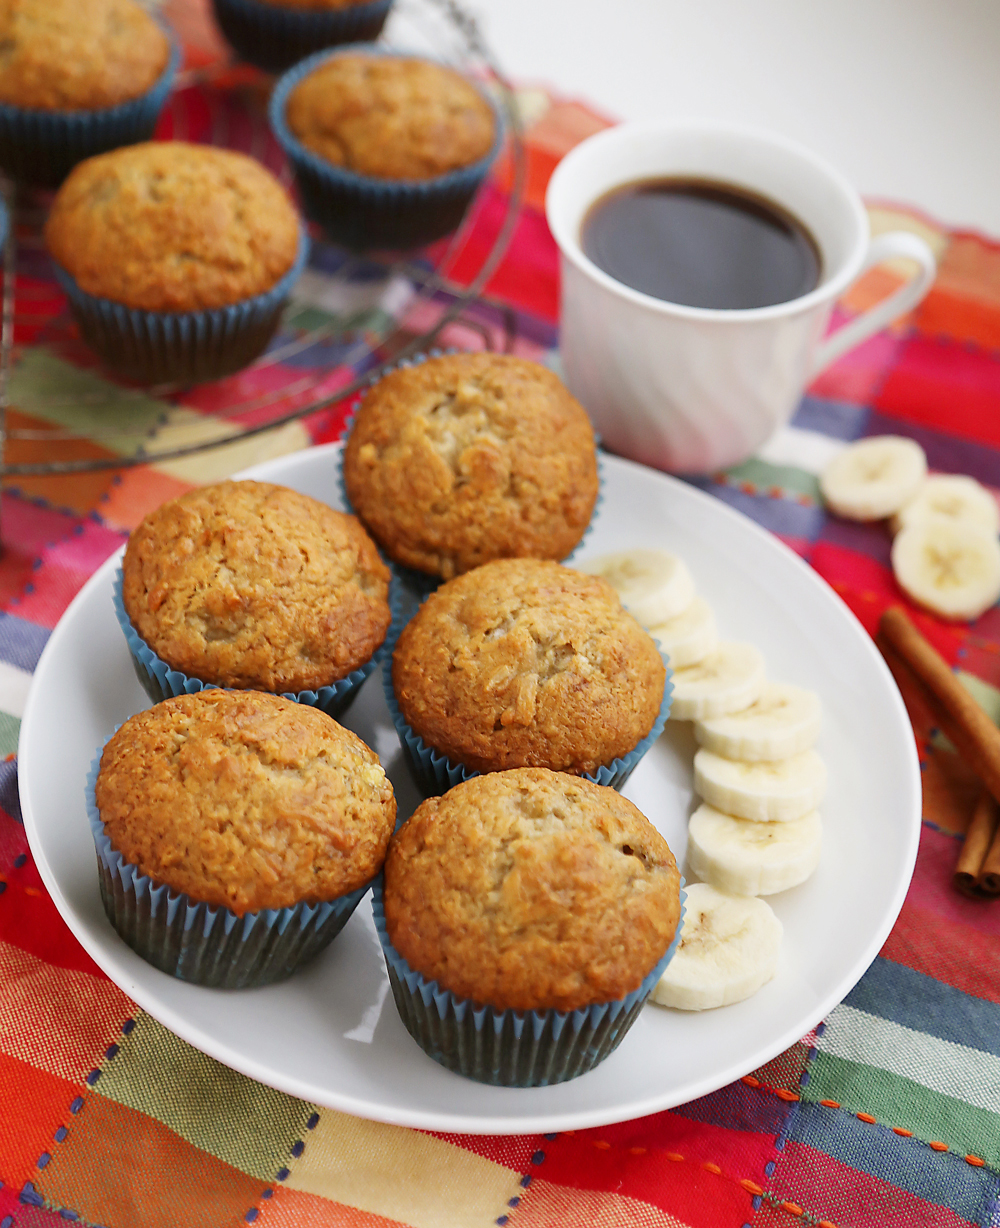 Toasted Coconut Banana Muffins - Super moist, fluffy banana muffins. These make a mouthwatering treat that pairs perfectly with your morning coffee! Thecomfortofcooking.com